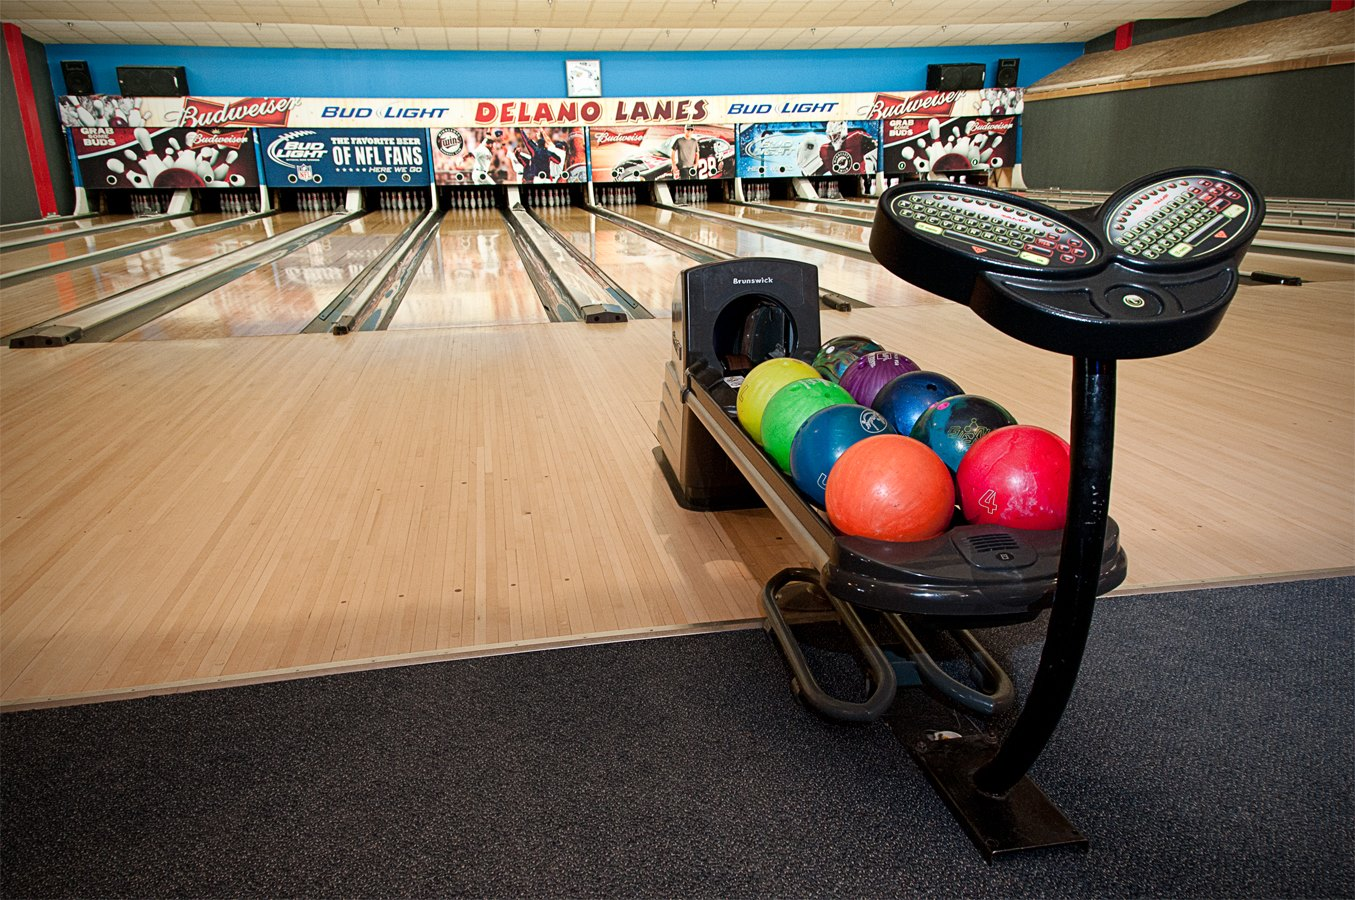 bowling balls on the rack and bowling alleys in the background